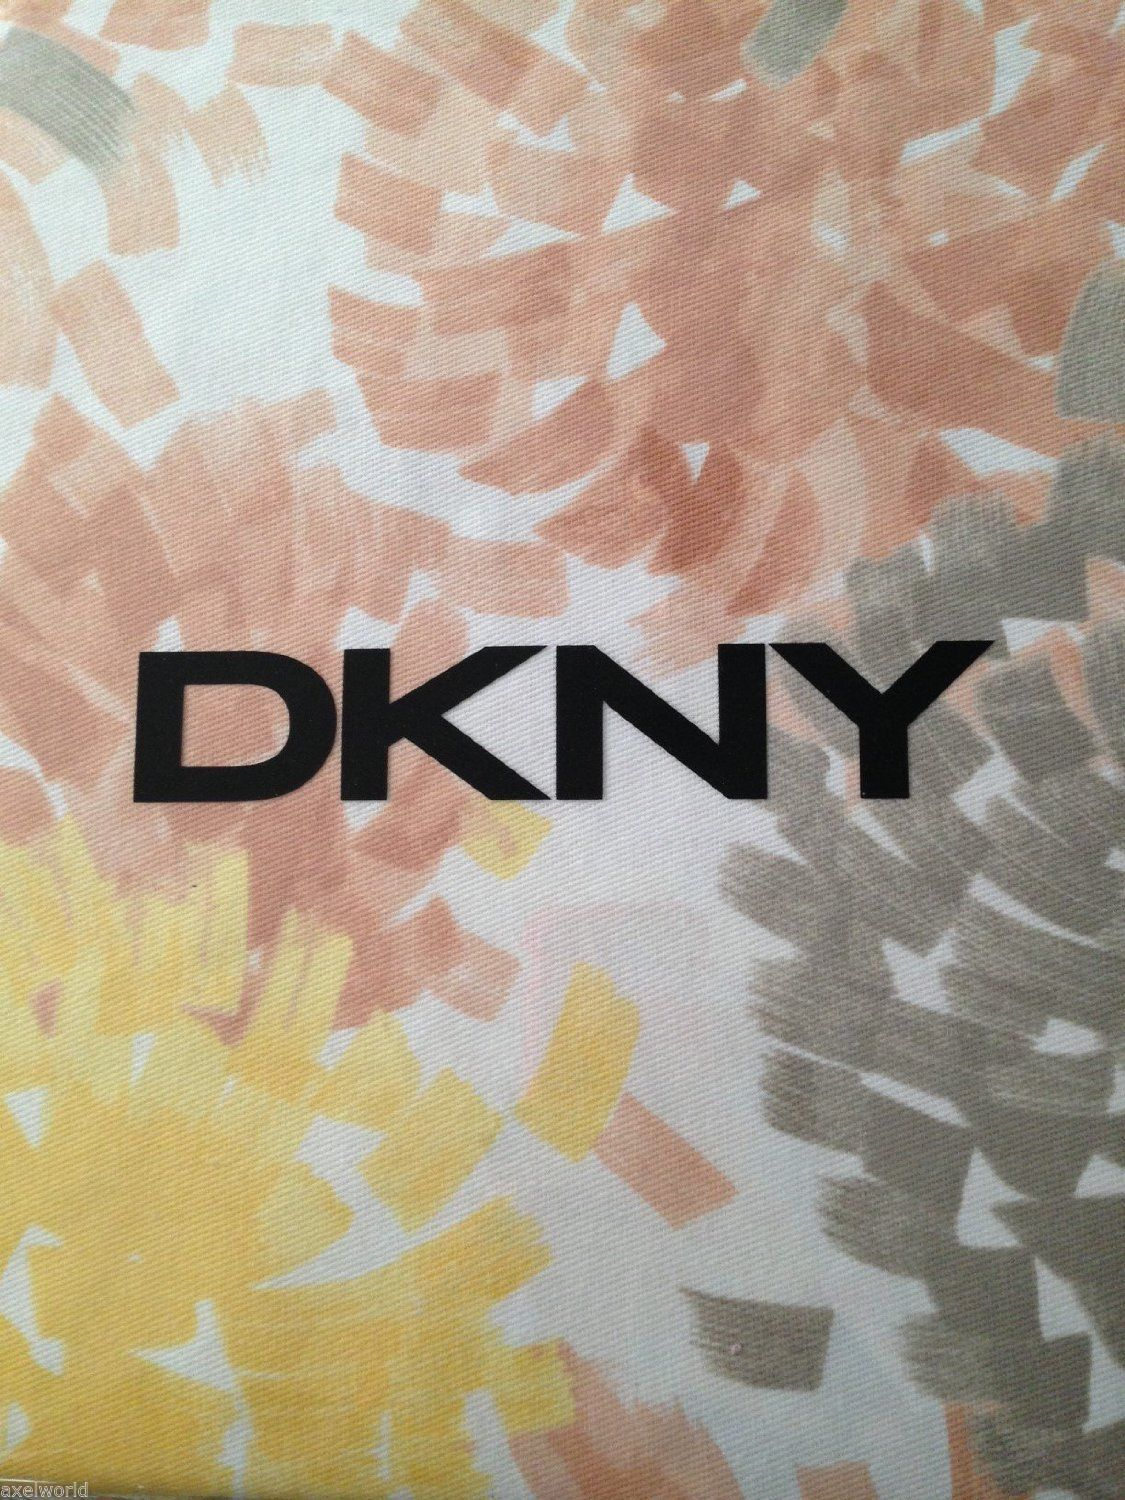 Dkny Brushstroke Floral 1 Pc Shower And 10 Similar Items 57